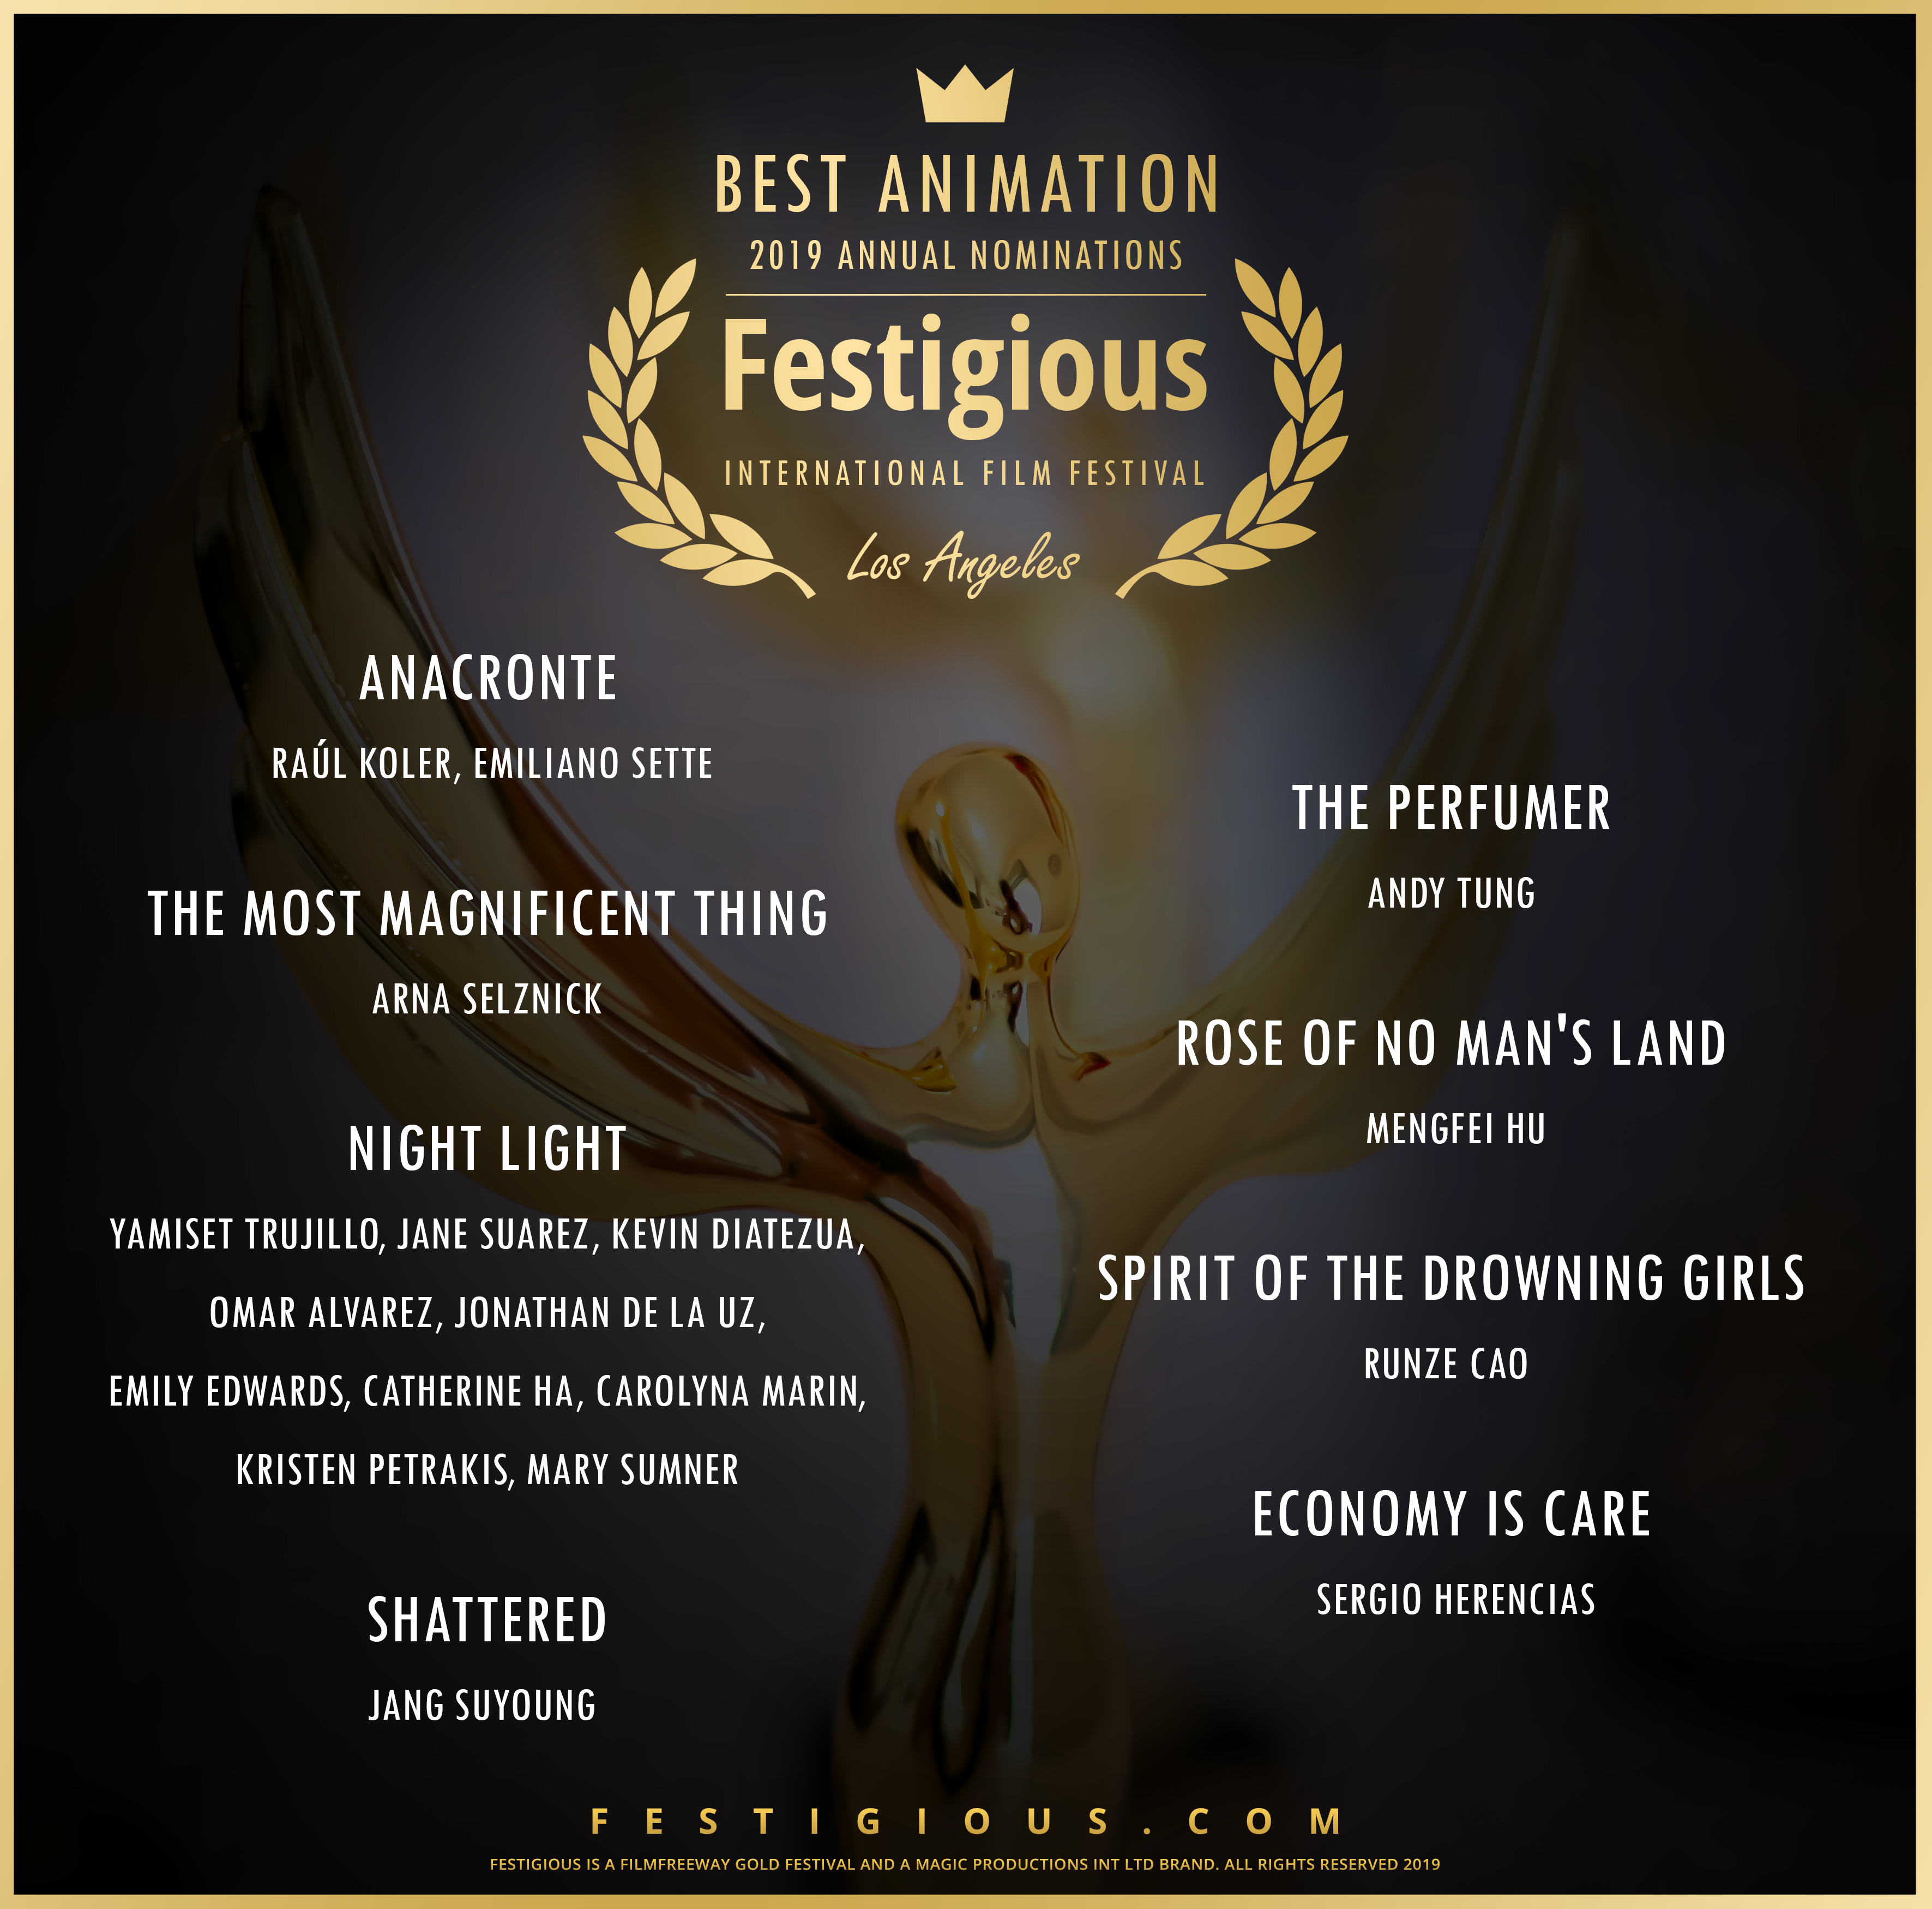 Festigious Best Animation